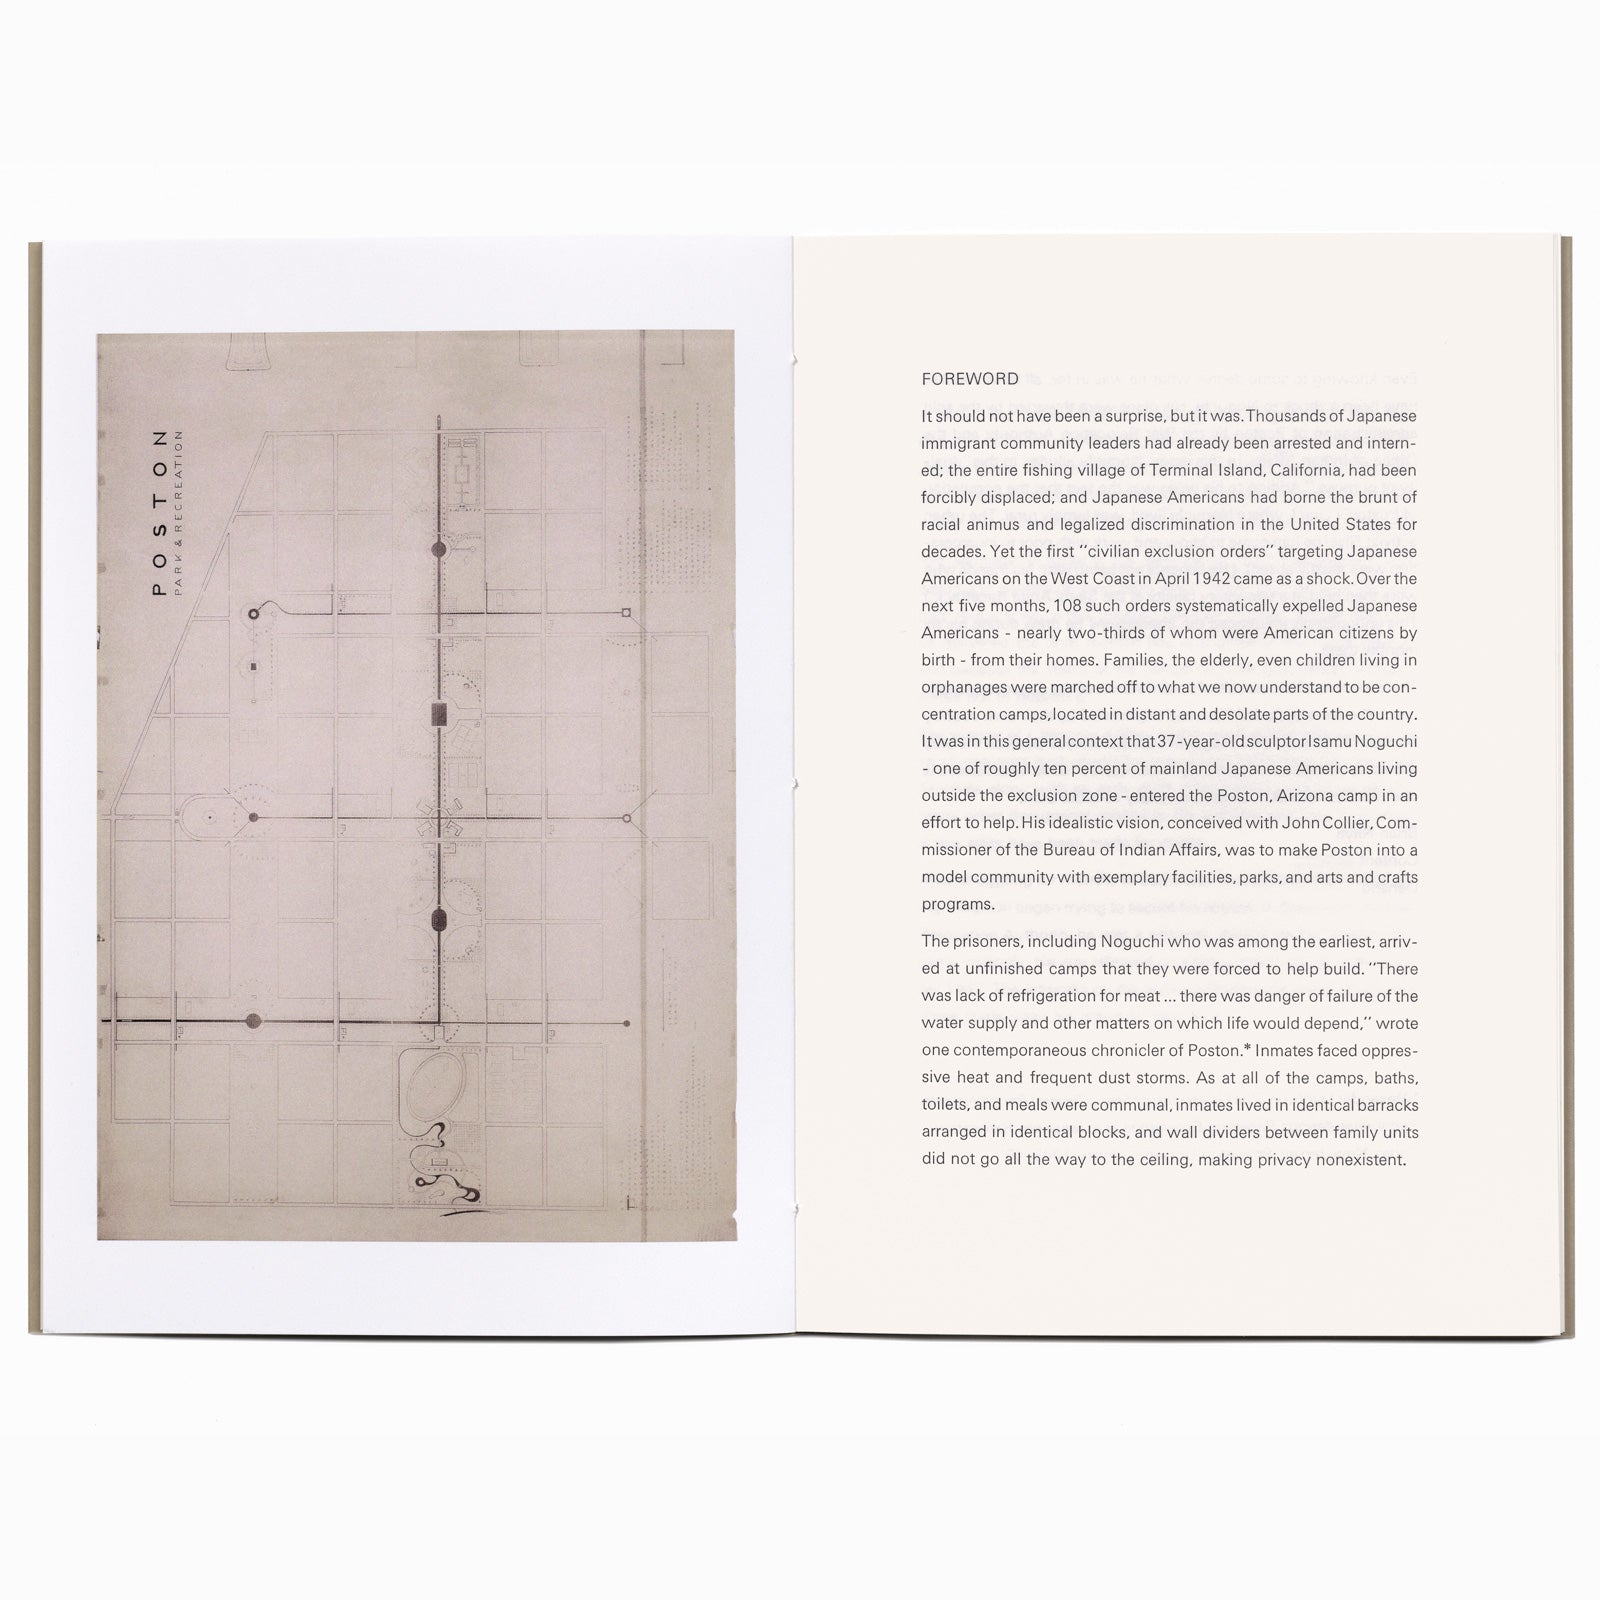 Book spread with Isamu Noguchi's blueprint for Parks and Recreation areas for the Japanese American incarceration camp at Poston, Arizona, facing the Foreword by Brian Niiya